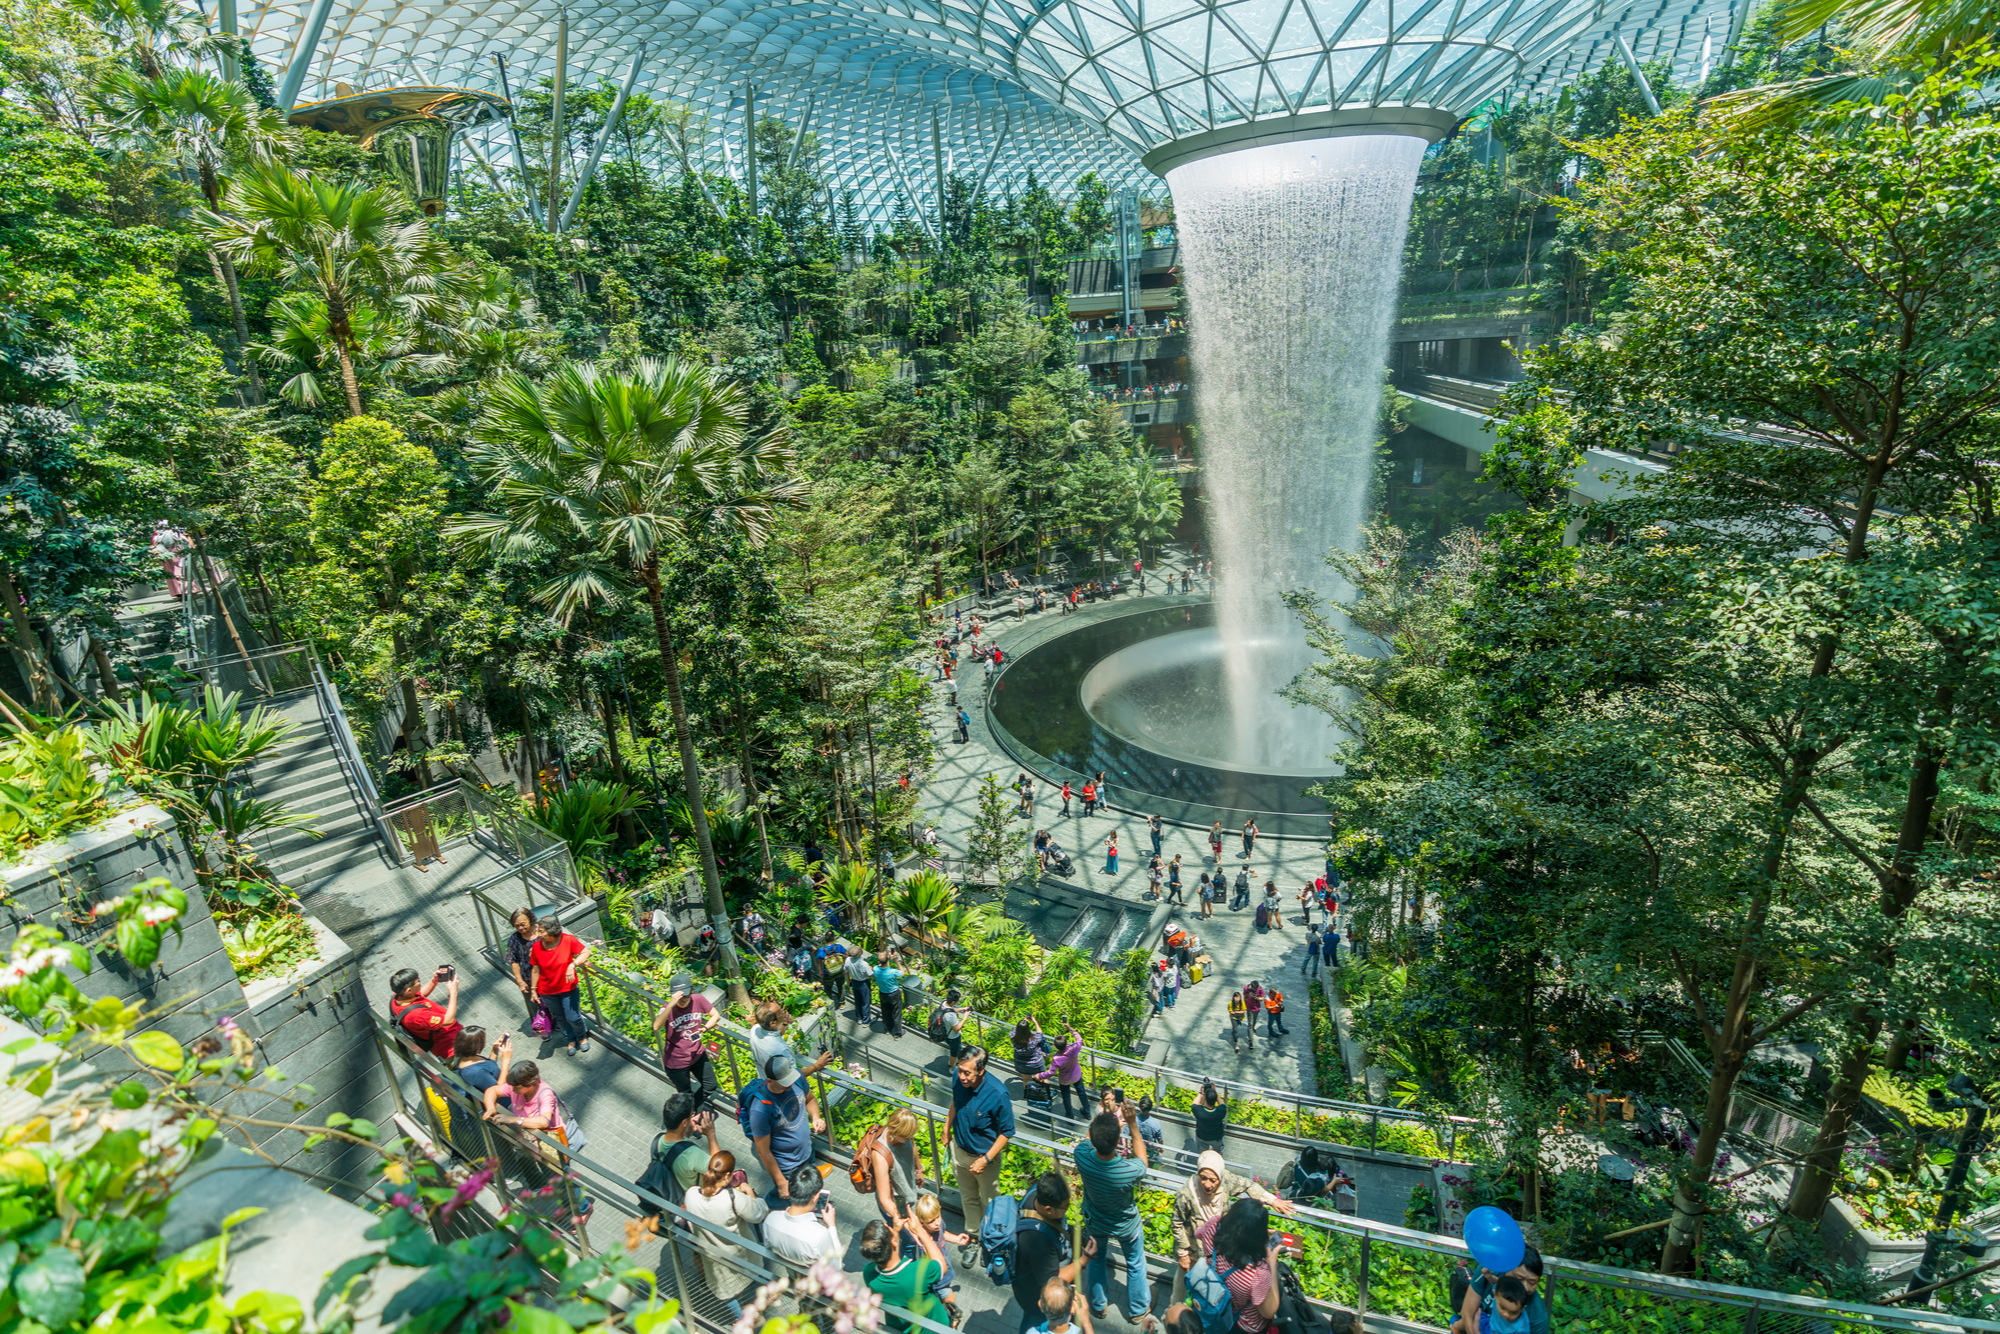 Passengers looking at the Rain Vortex located inside the Jewel at Changi Airport during a stopover in Singapore